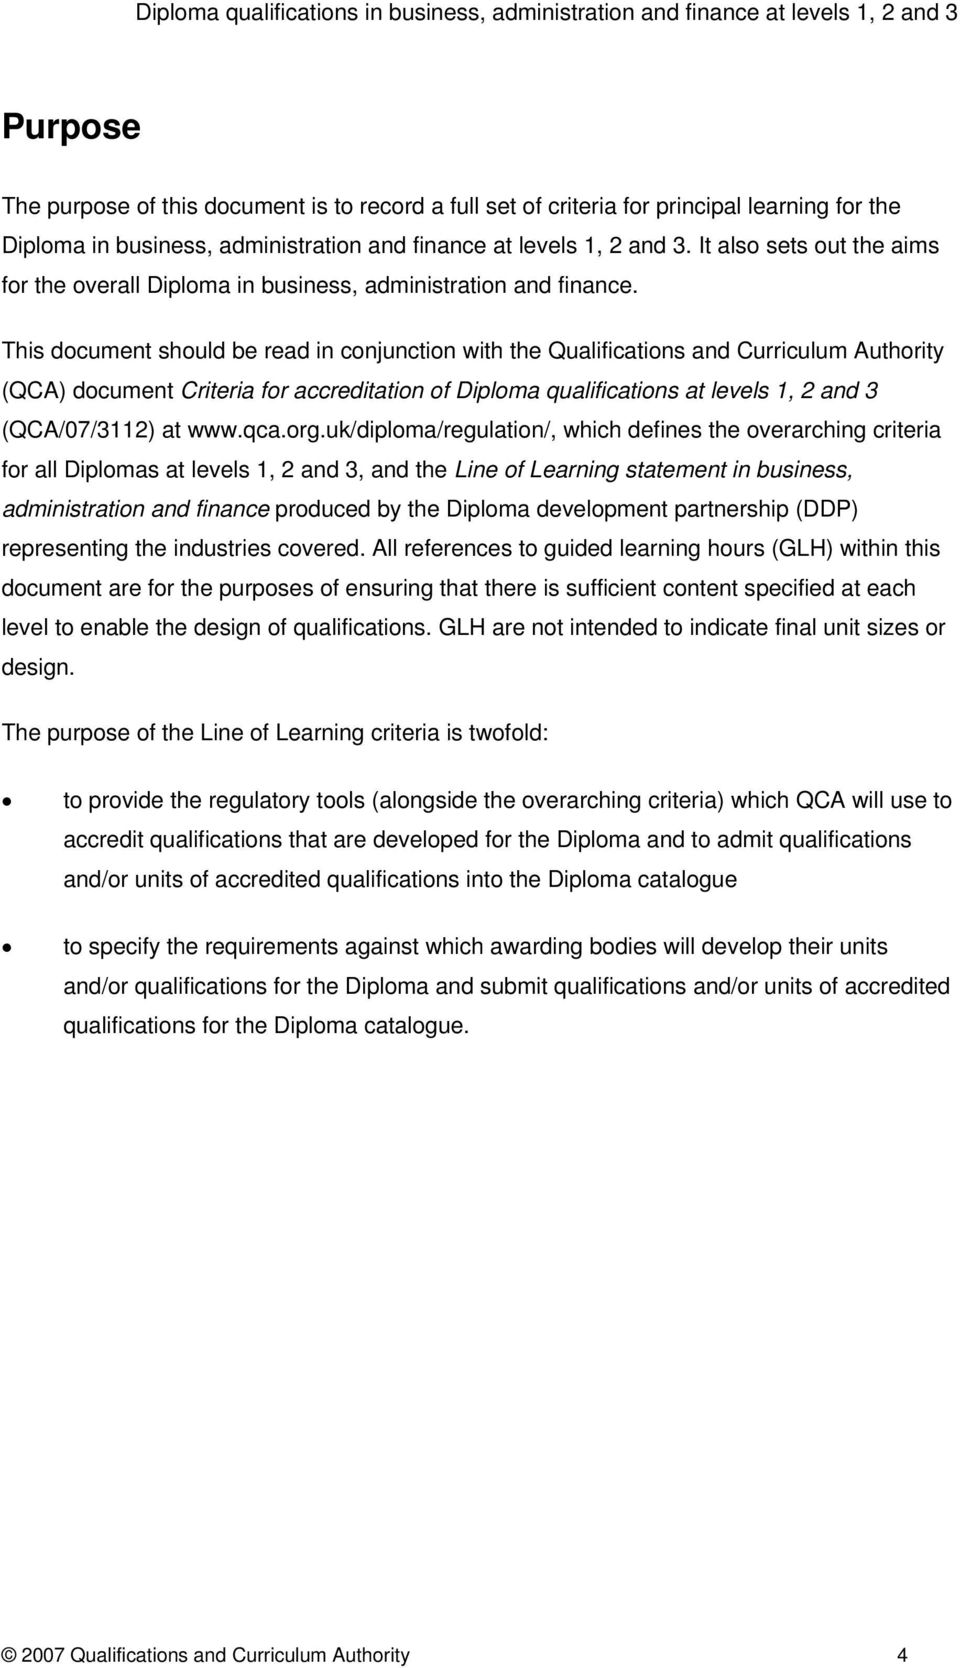 This document should be read in conjunction with the Qualifications and Curriculum Authority (QCA) document Criteria for accreditation of Diploma qualifications at levels 1, 2 and 3 (QCA/07/3112) at